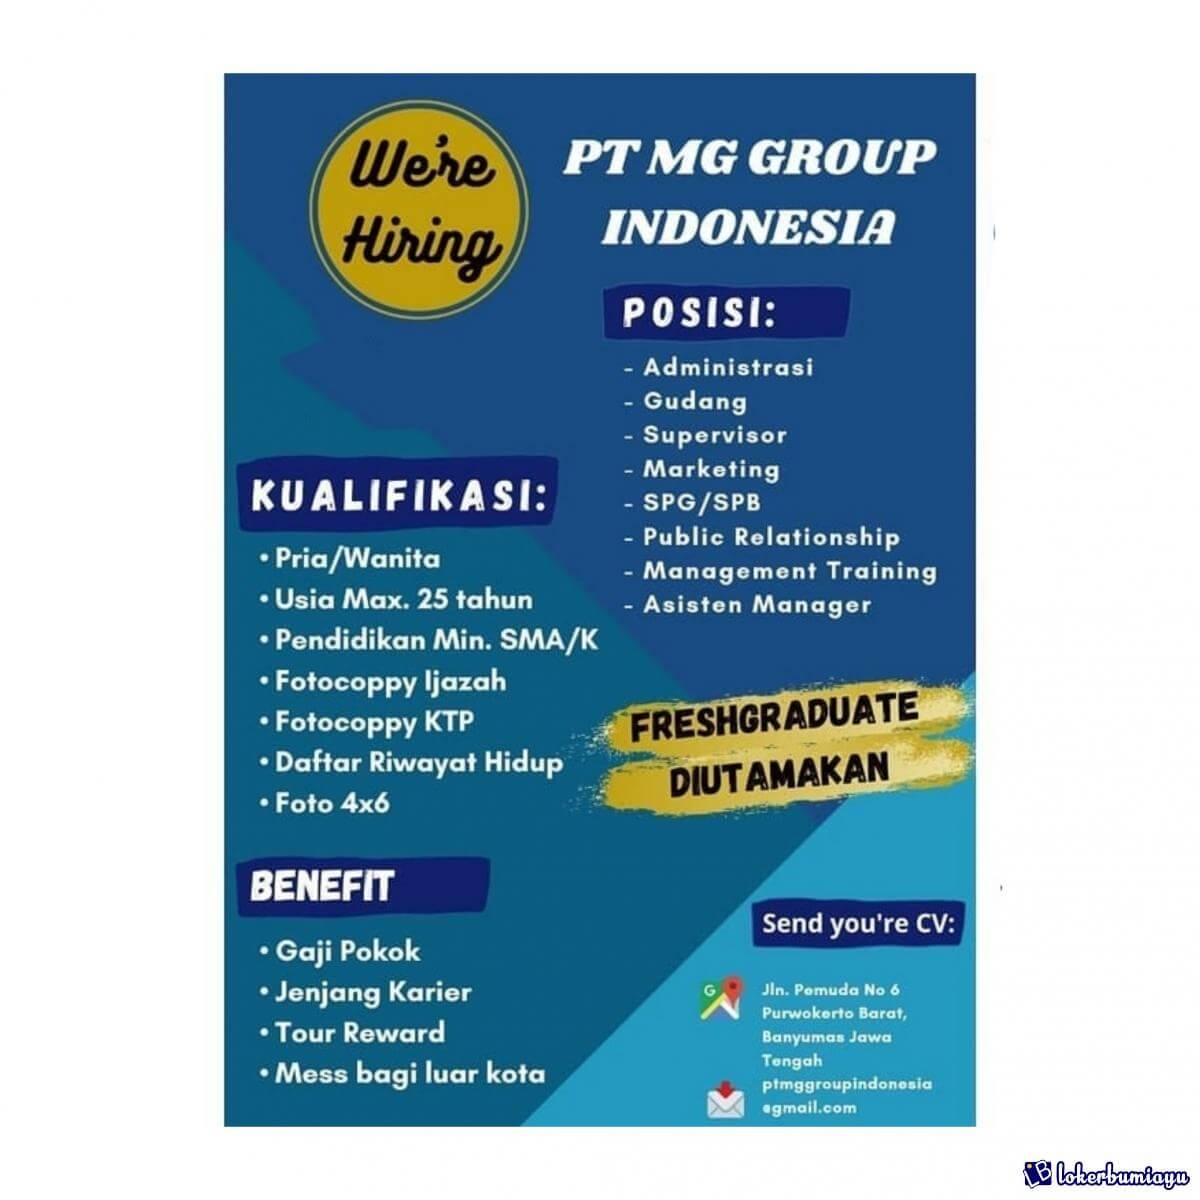 PT MG Group Indonesia